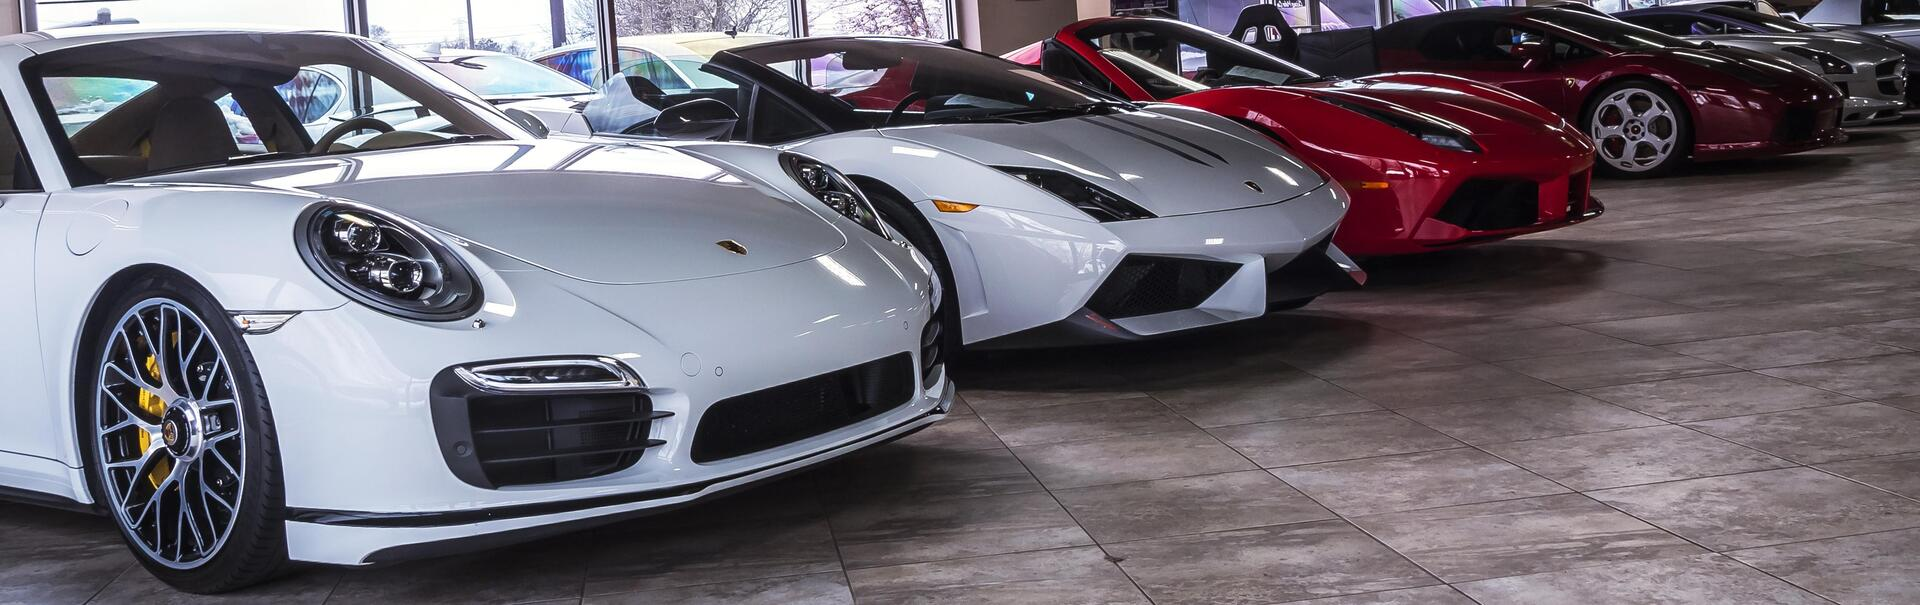 Dealership Chicago Il Used Cars Chicago Motor Cars